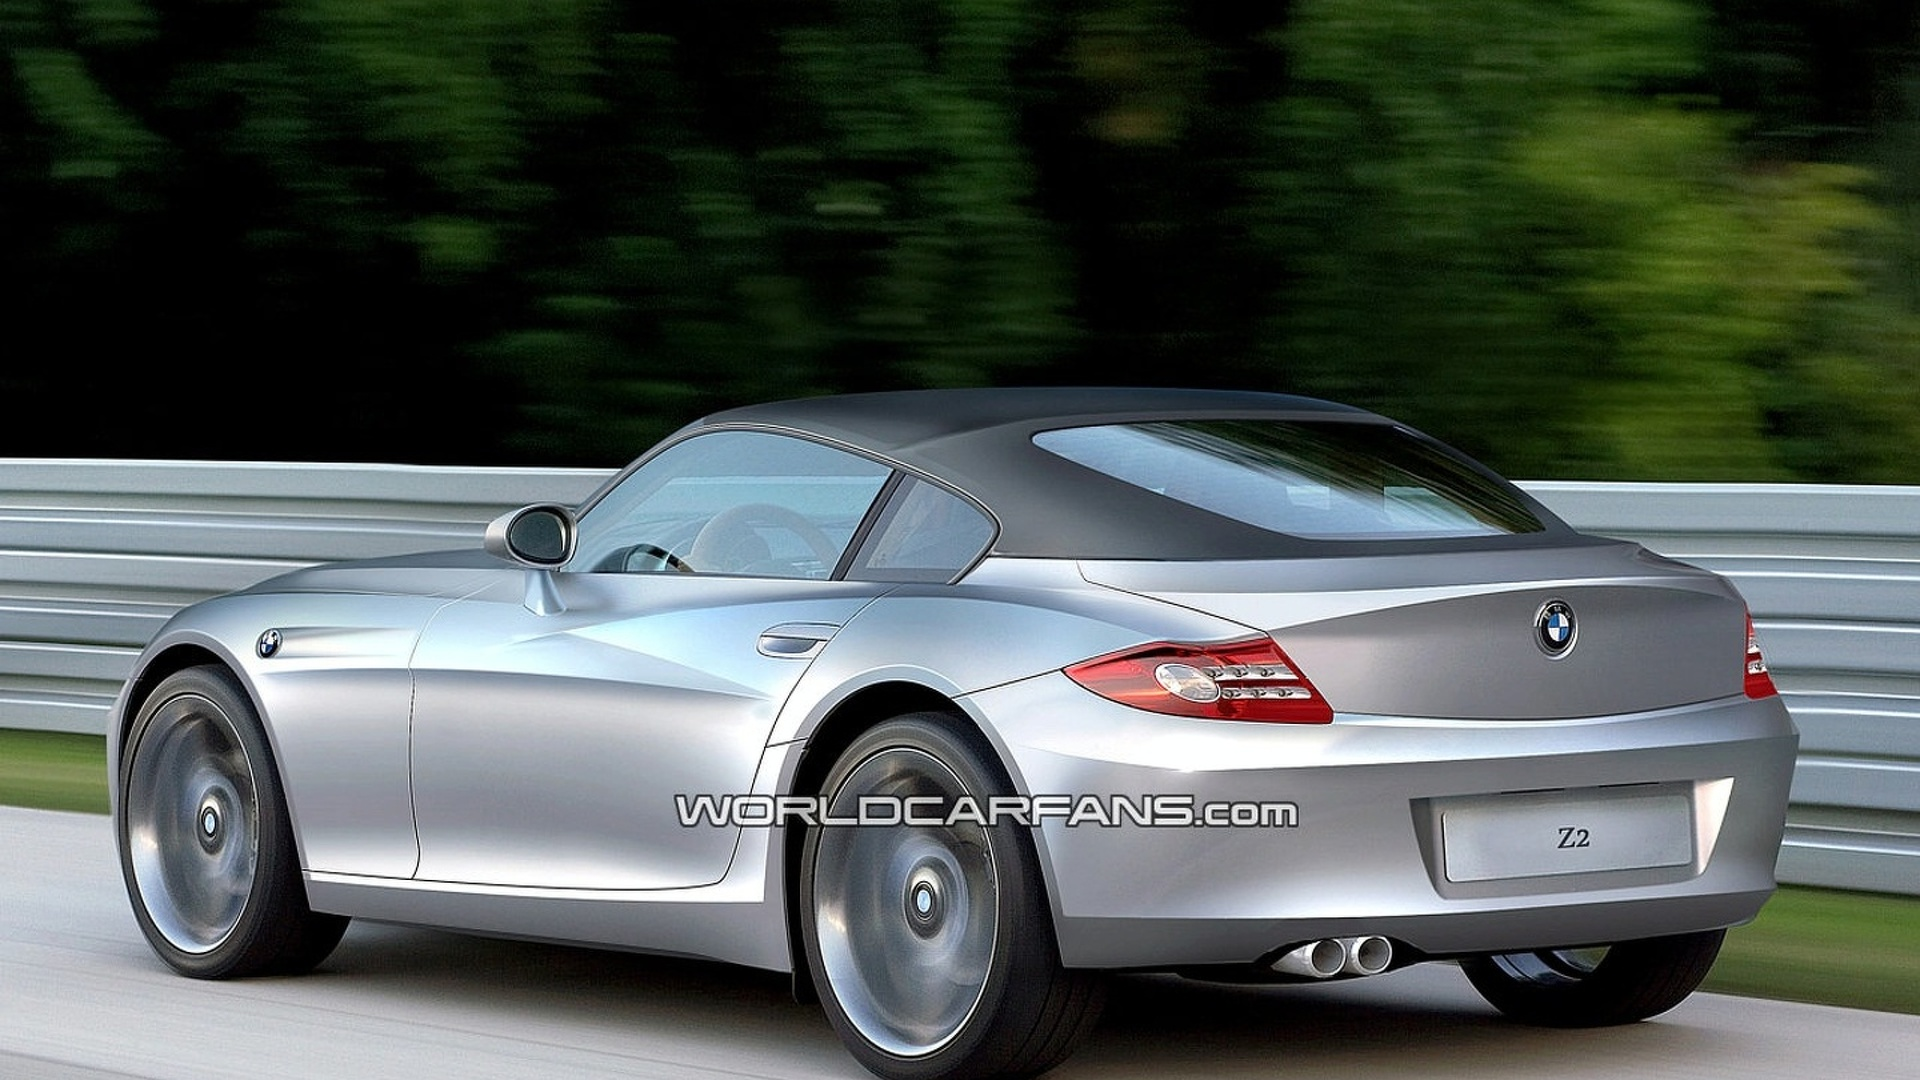 Speculation: BMW Z4 debut next month - Z2 hybrid on the way